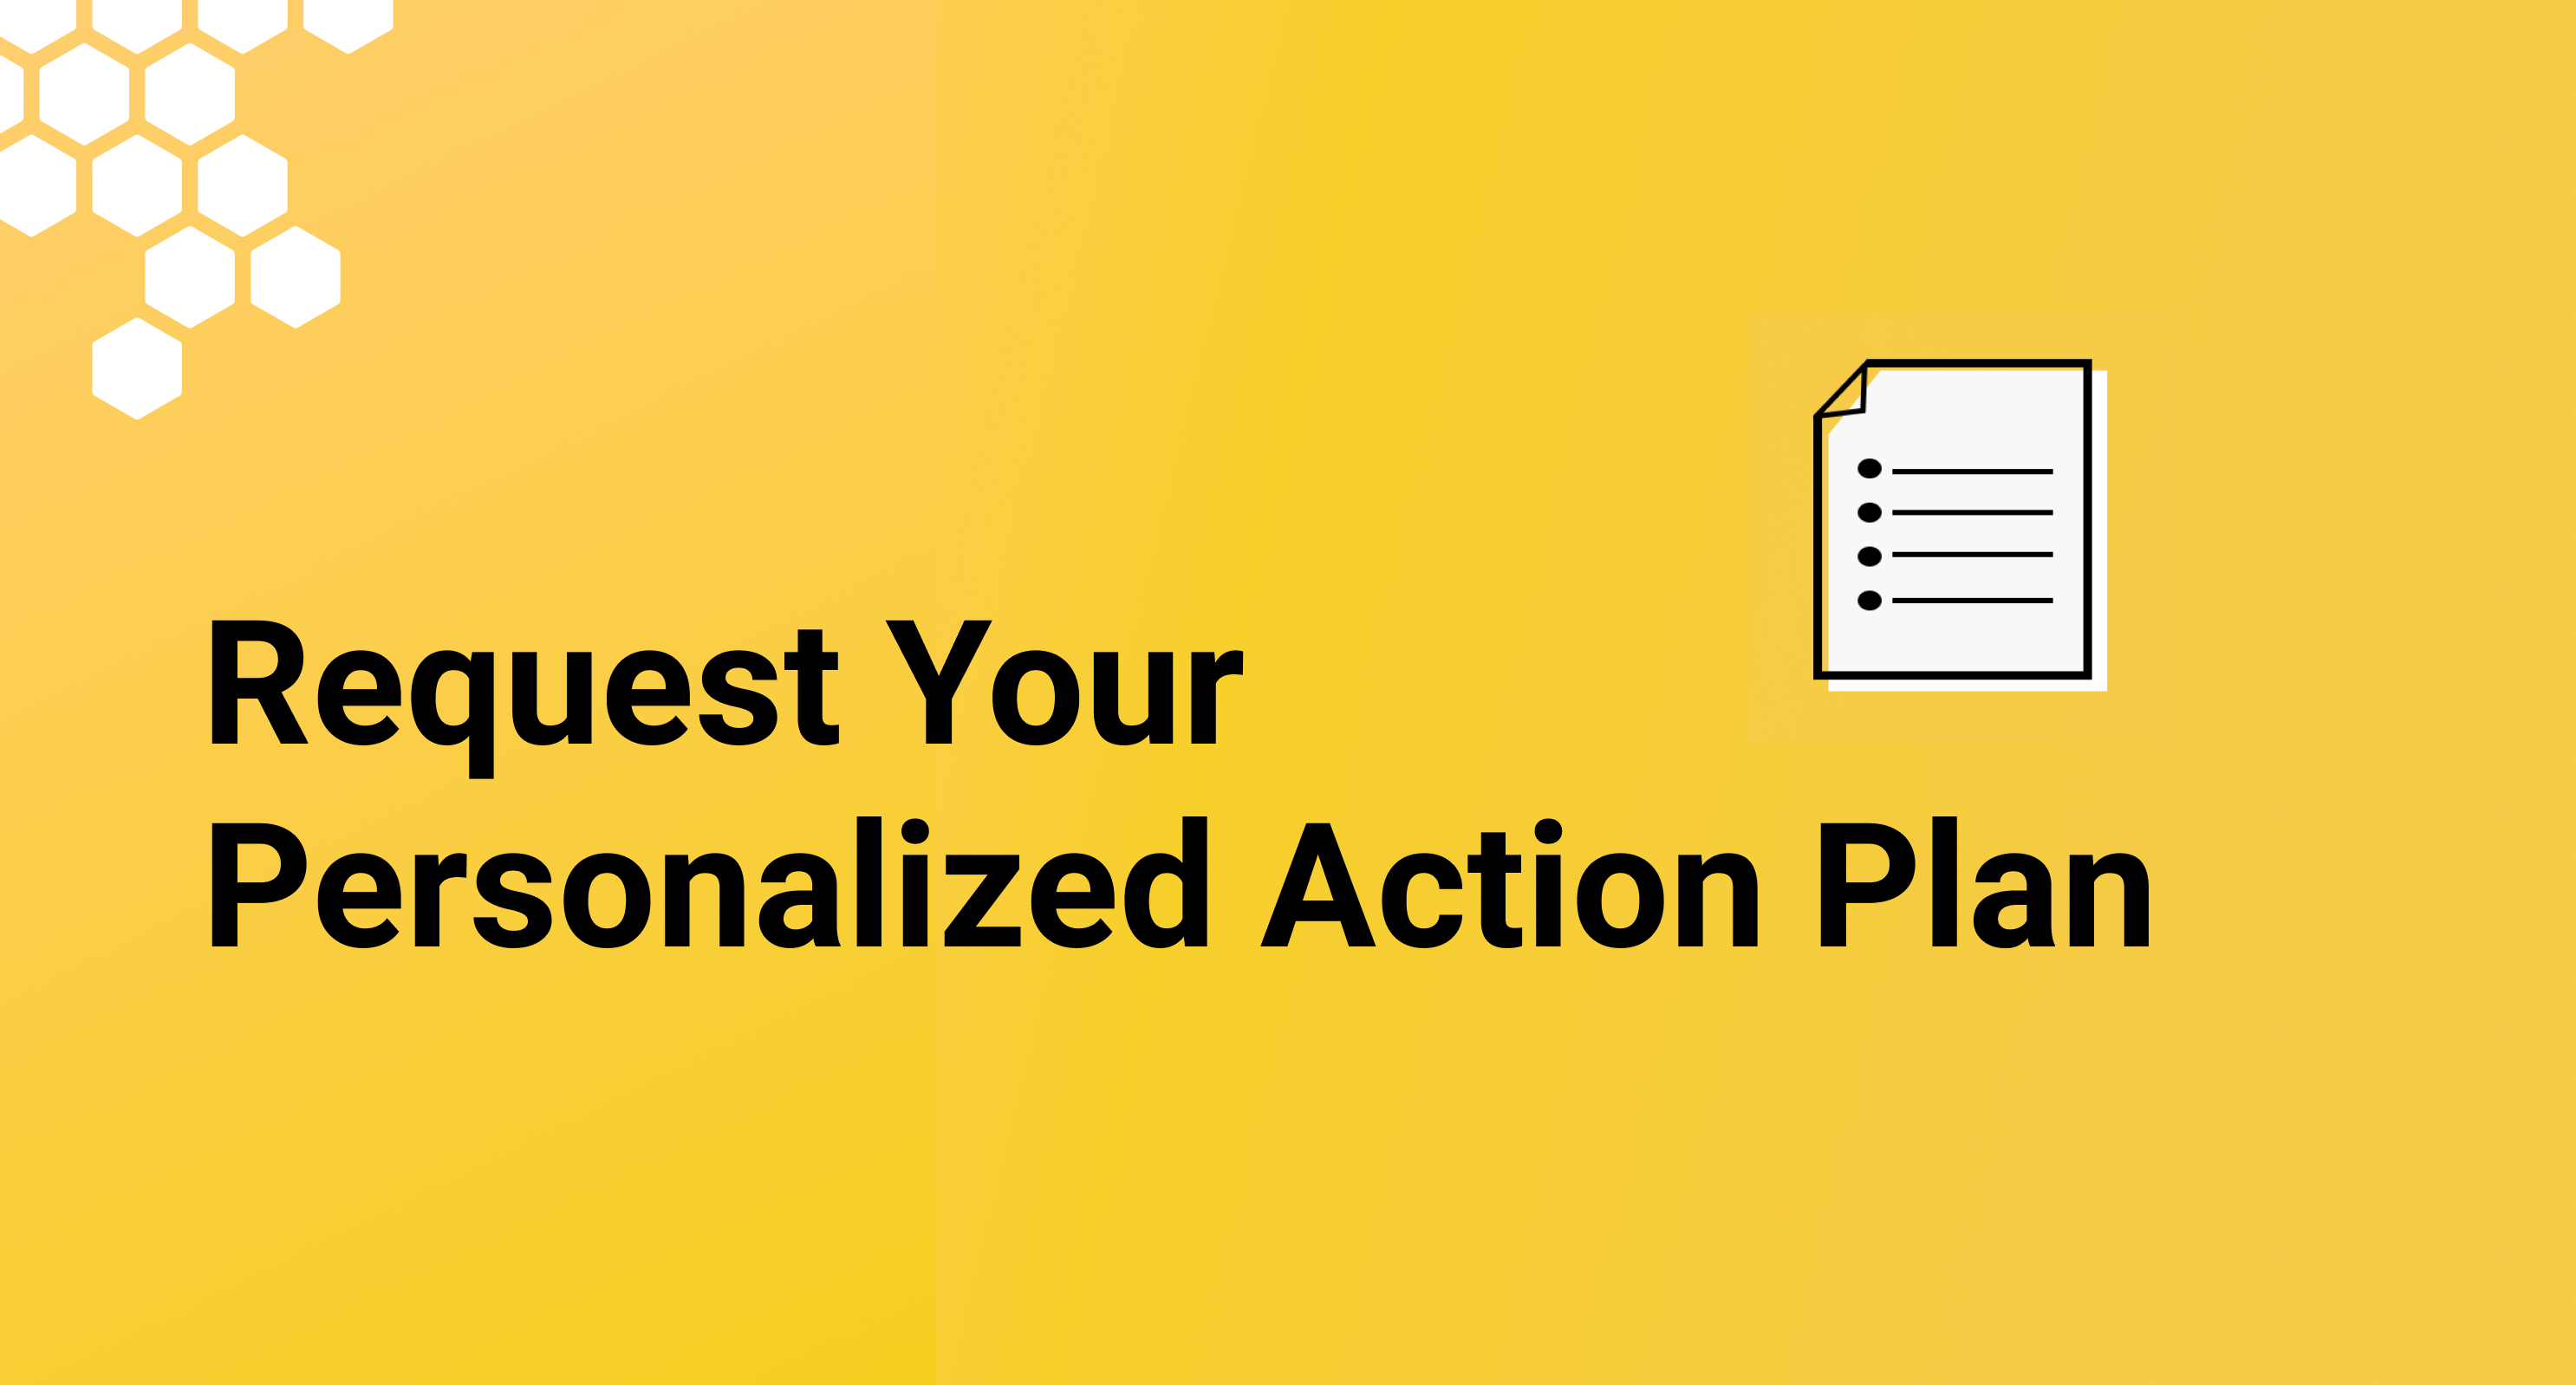 Your Personalized Action plan